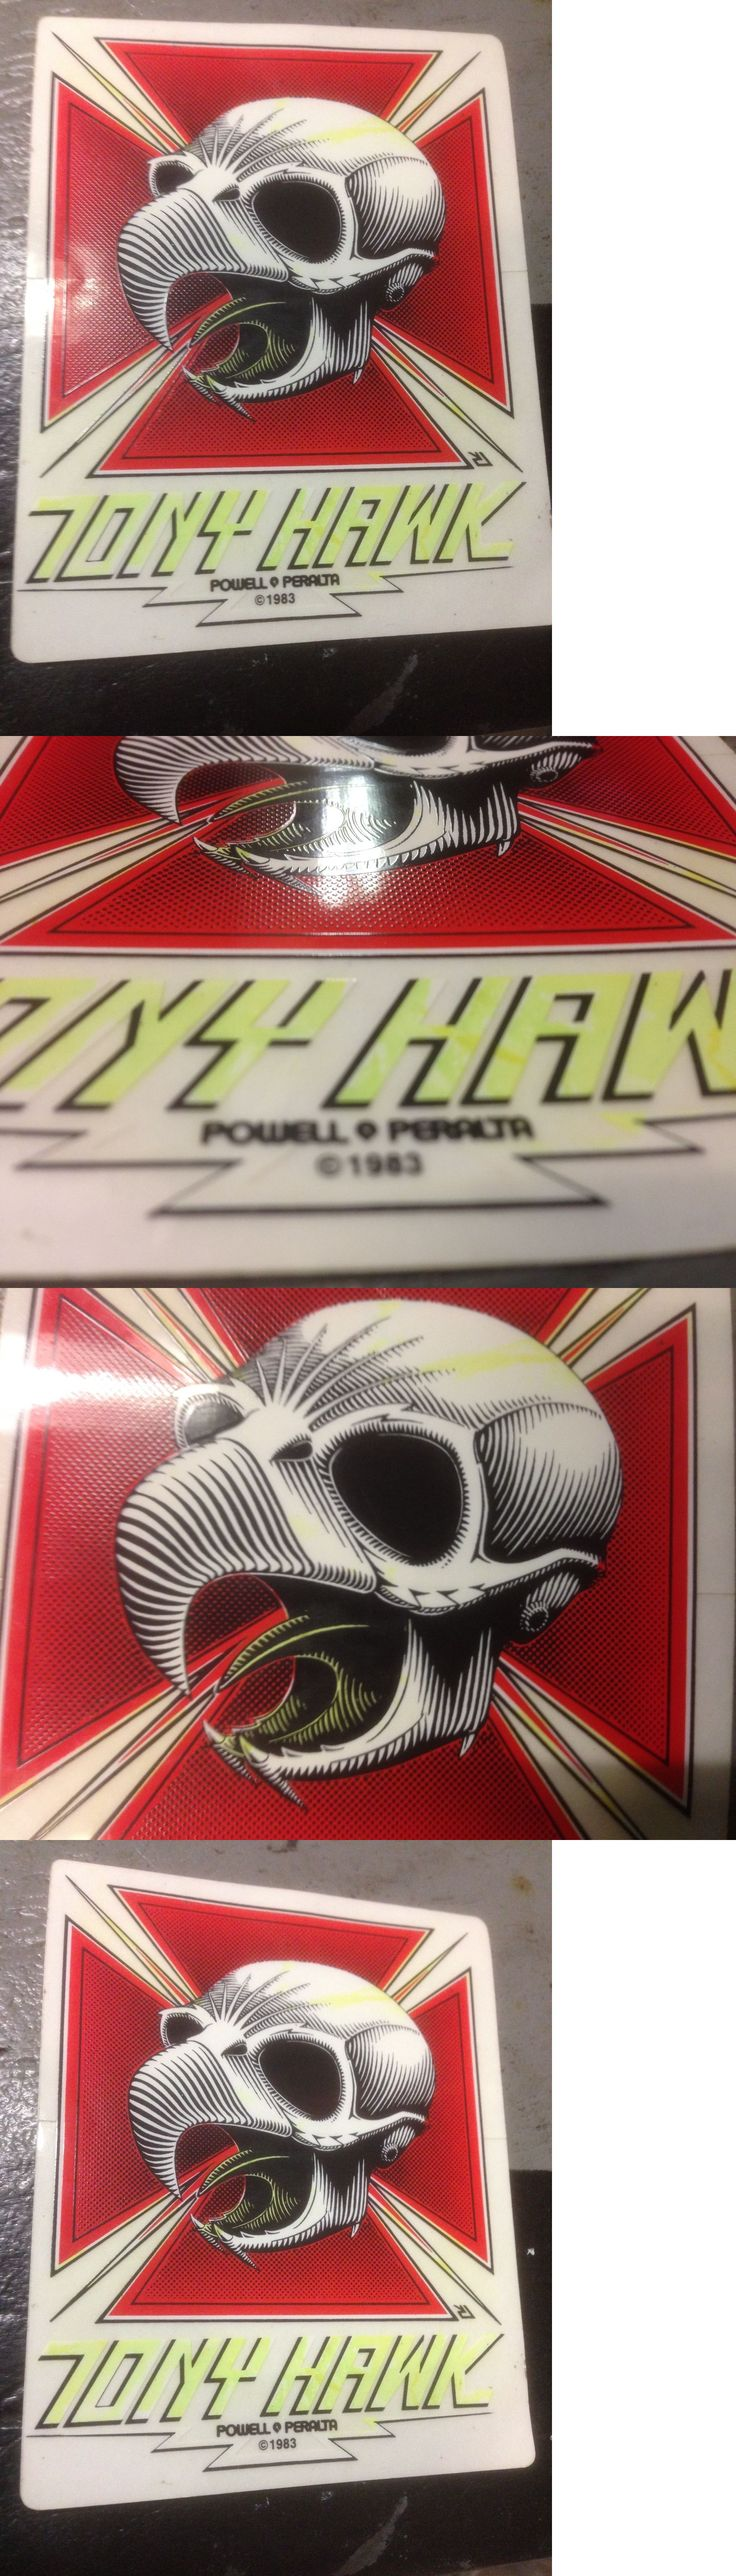 Stickers and Decals 47357: Tony Hawk Powell Peralta Skateboard Sticker Vintage 1983 Rare Bones Brigade Sk8 -> BUY IT NOW ONLY: $50.0 on eBay!